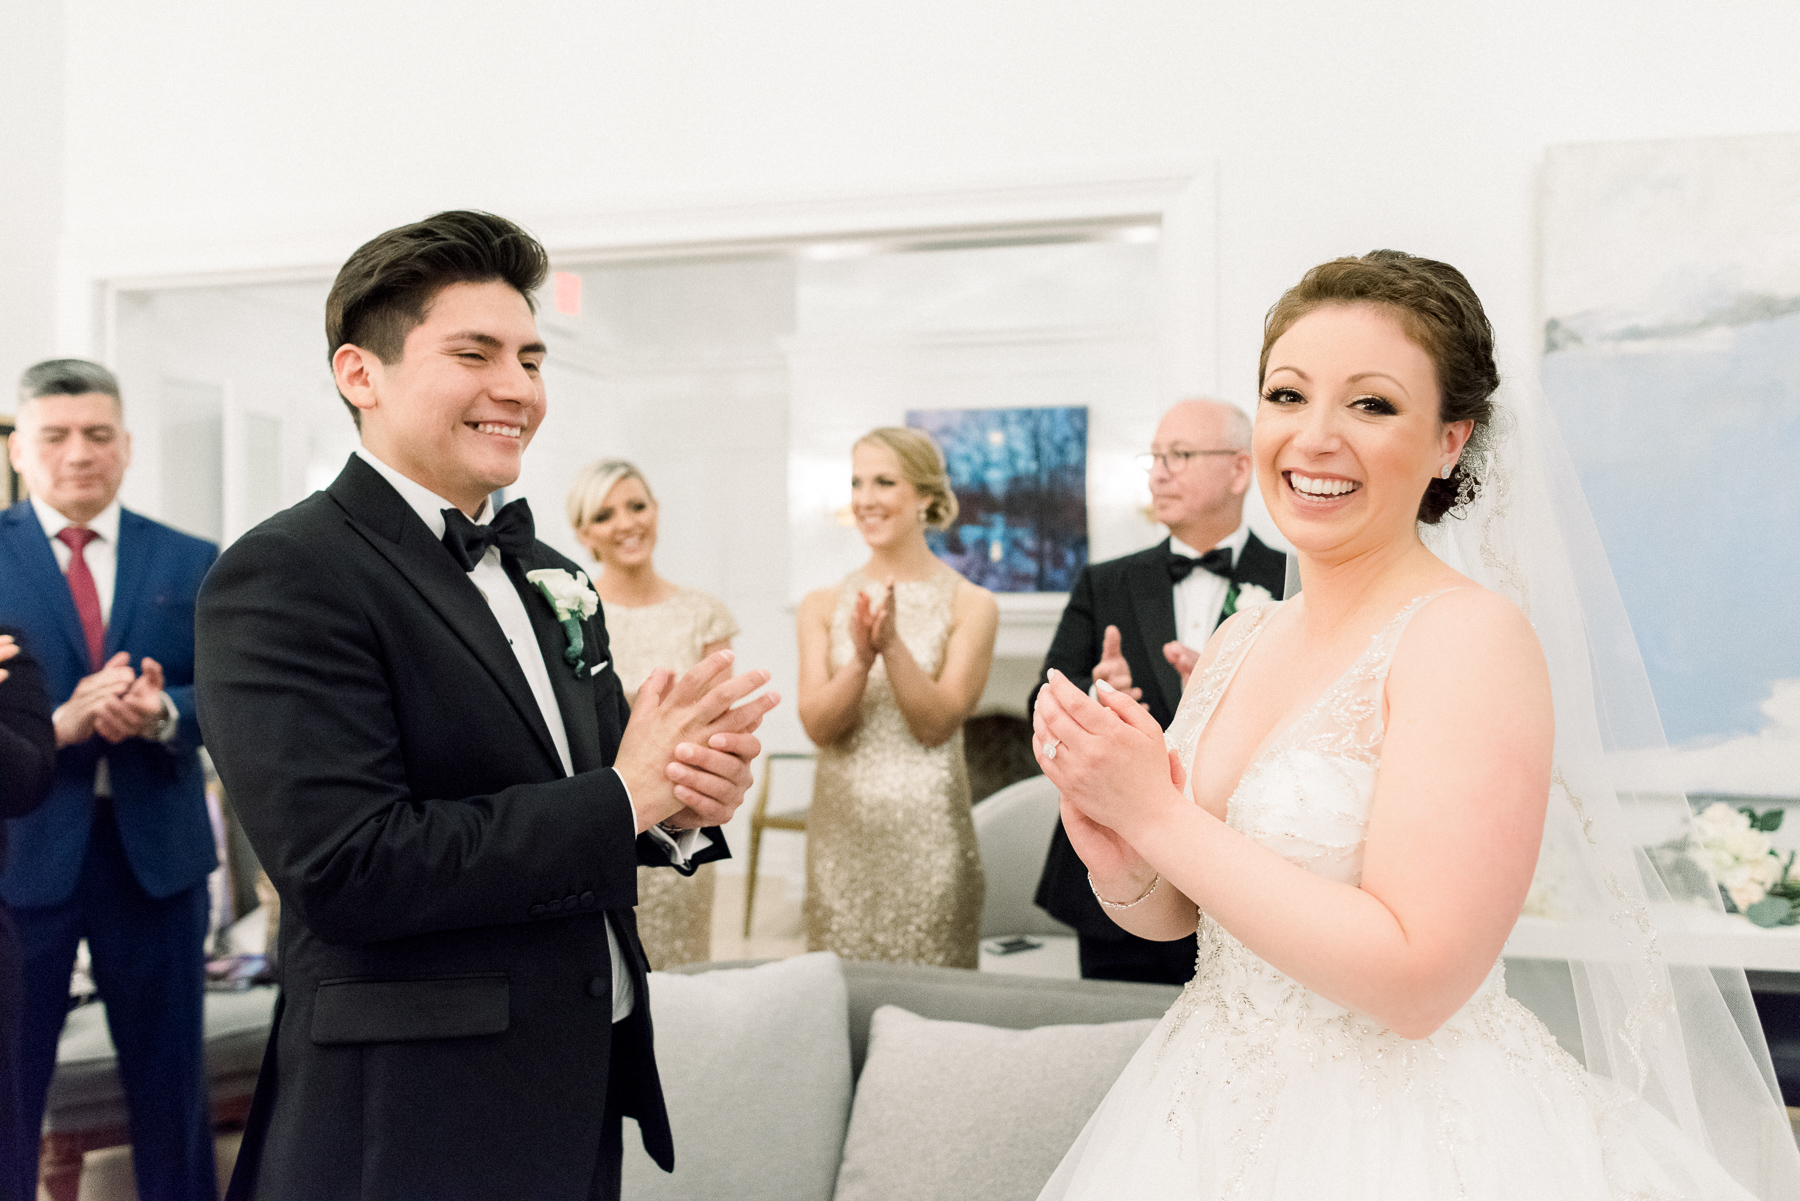 Private Vows at Wedding